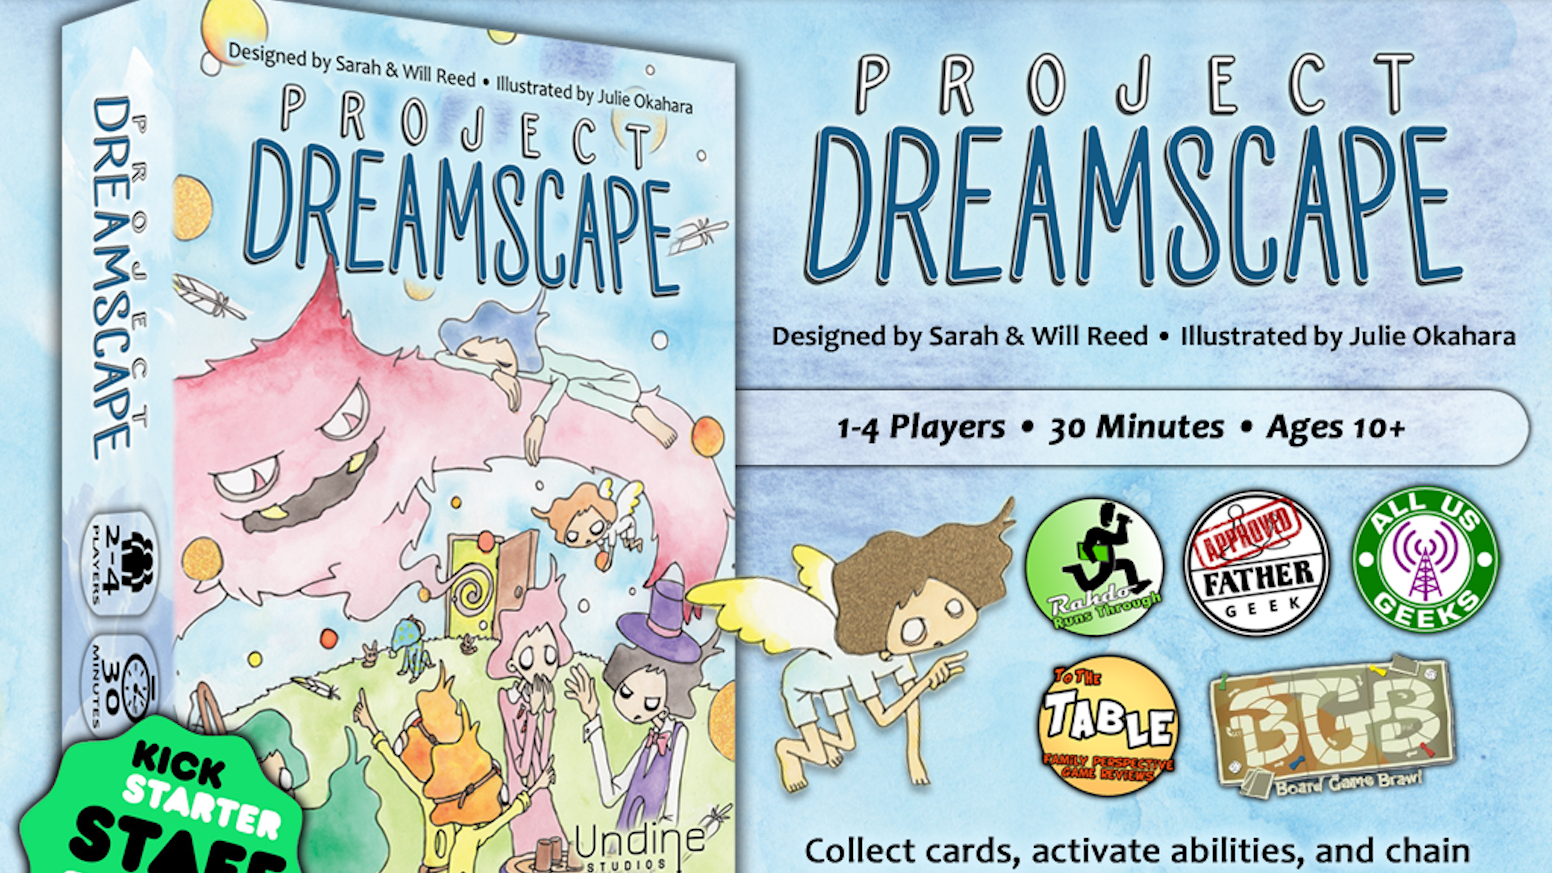 Collect cards, activate abilities, and chain together matching dream types in this unique set-collection game about dreaming big!